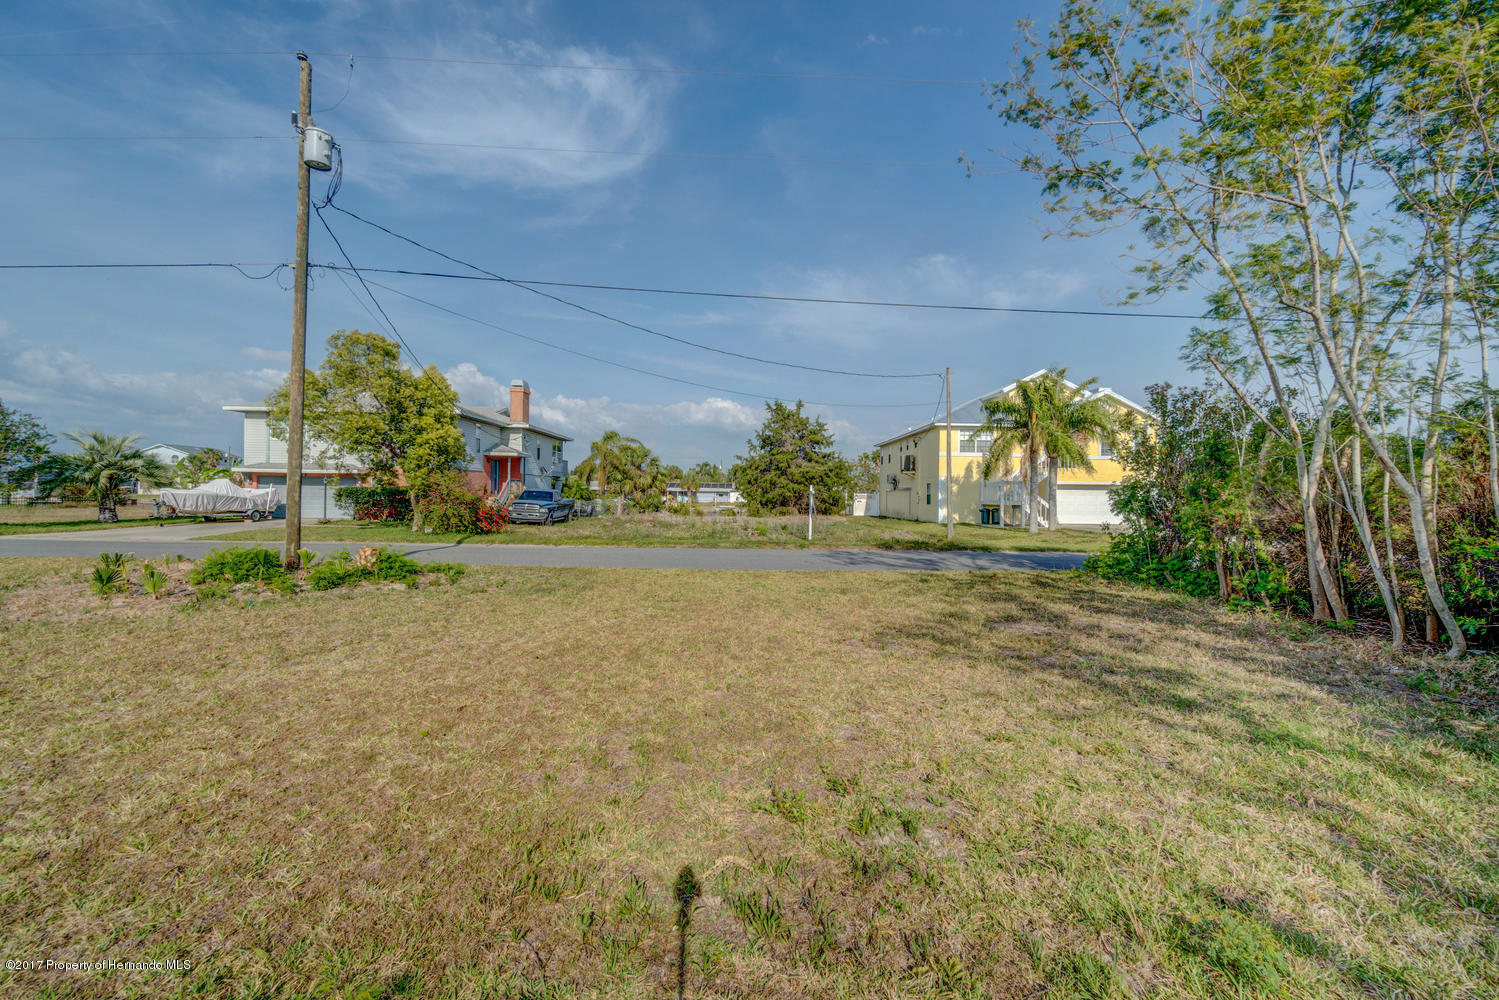 Lot 6 Diaz Ct (29)